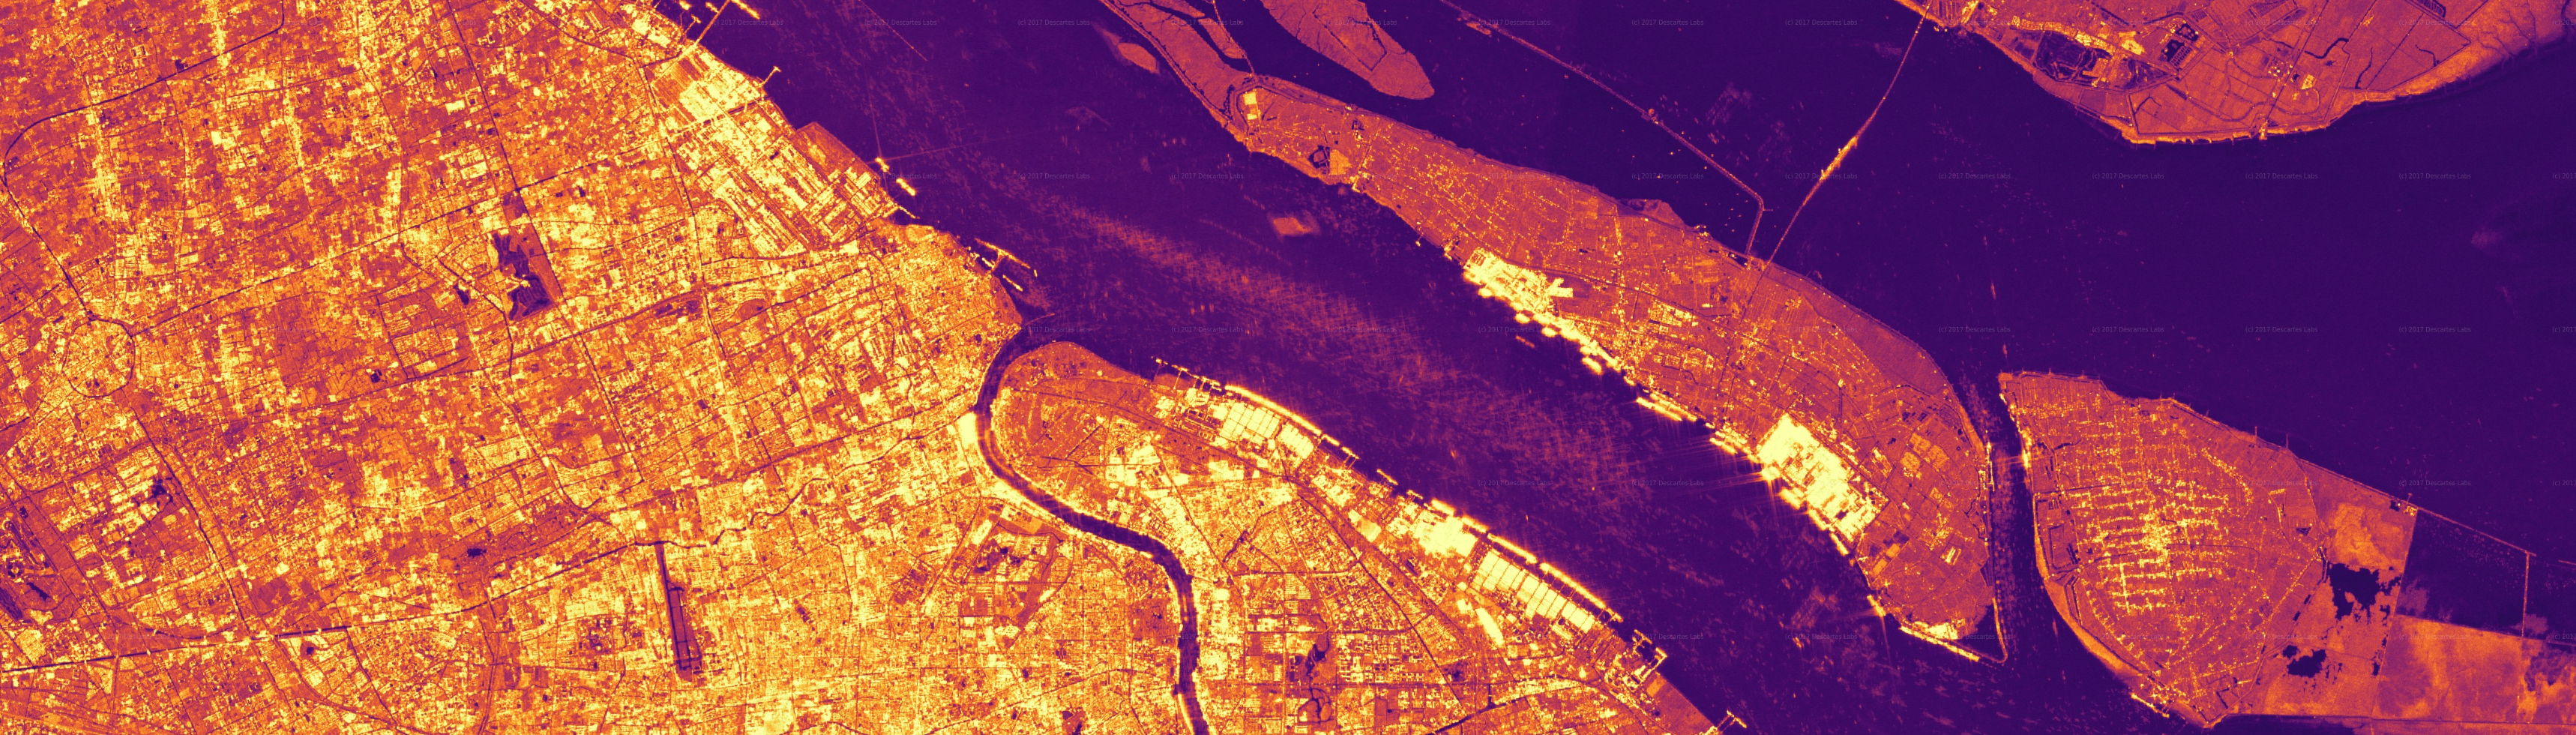 Synthetic Aperture Radar image of the the Port of Shanghai